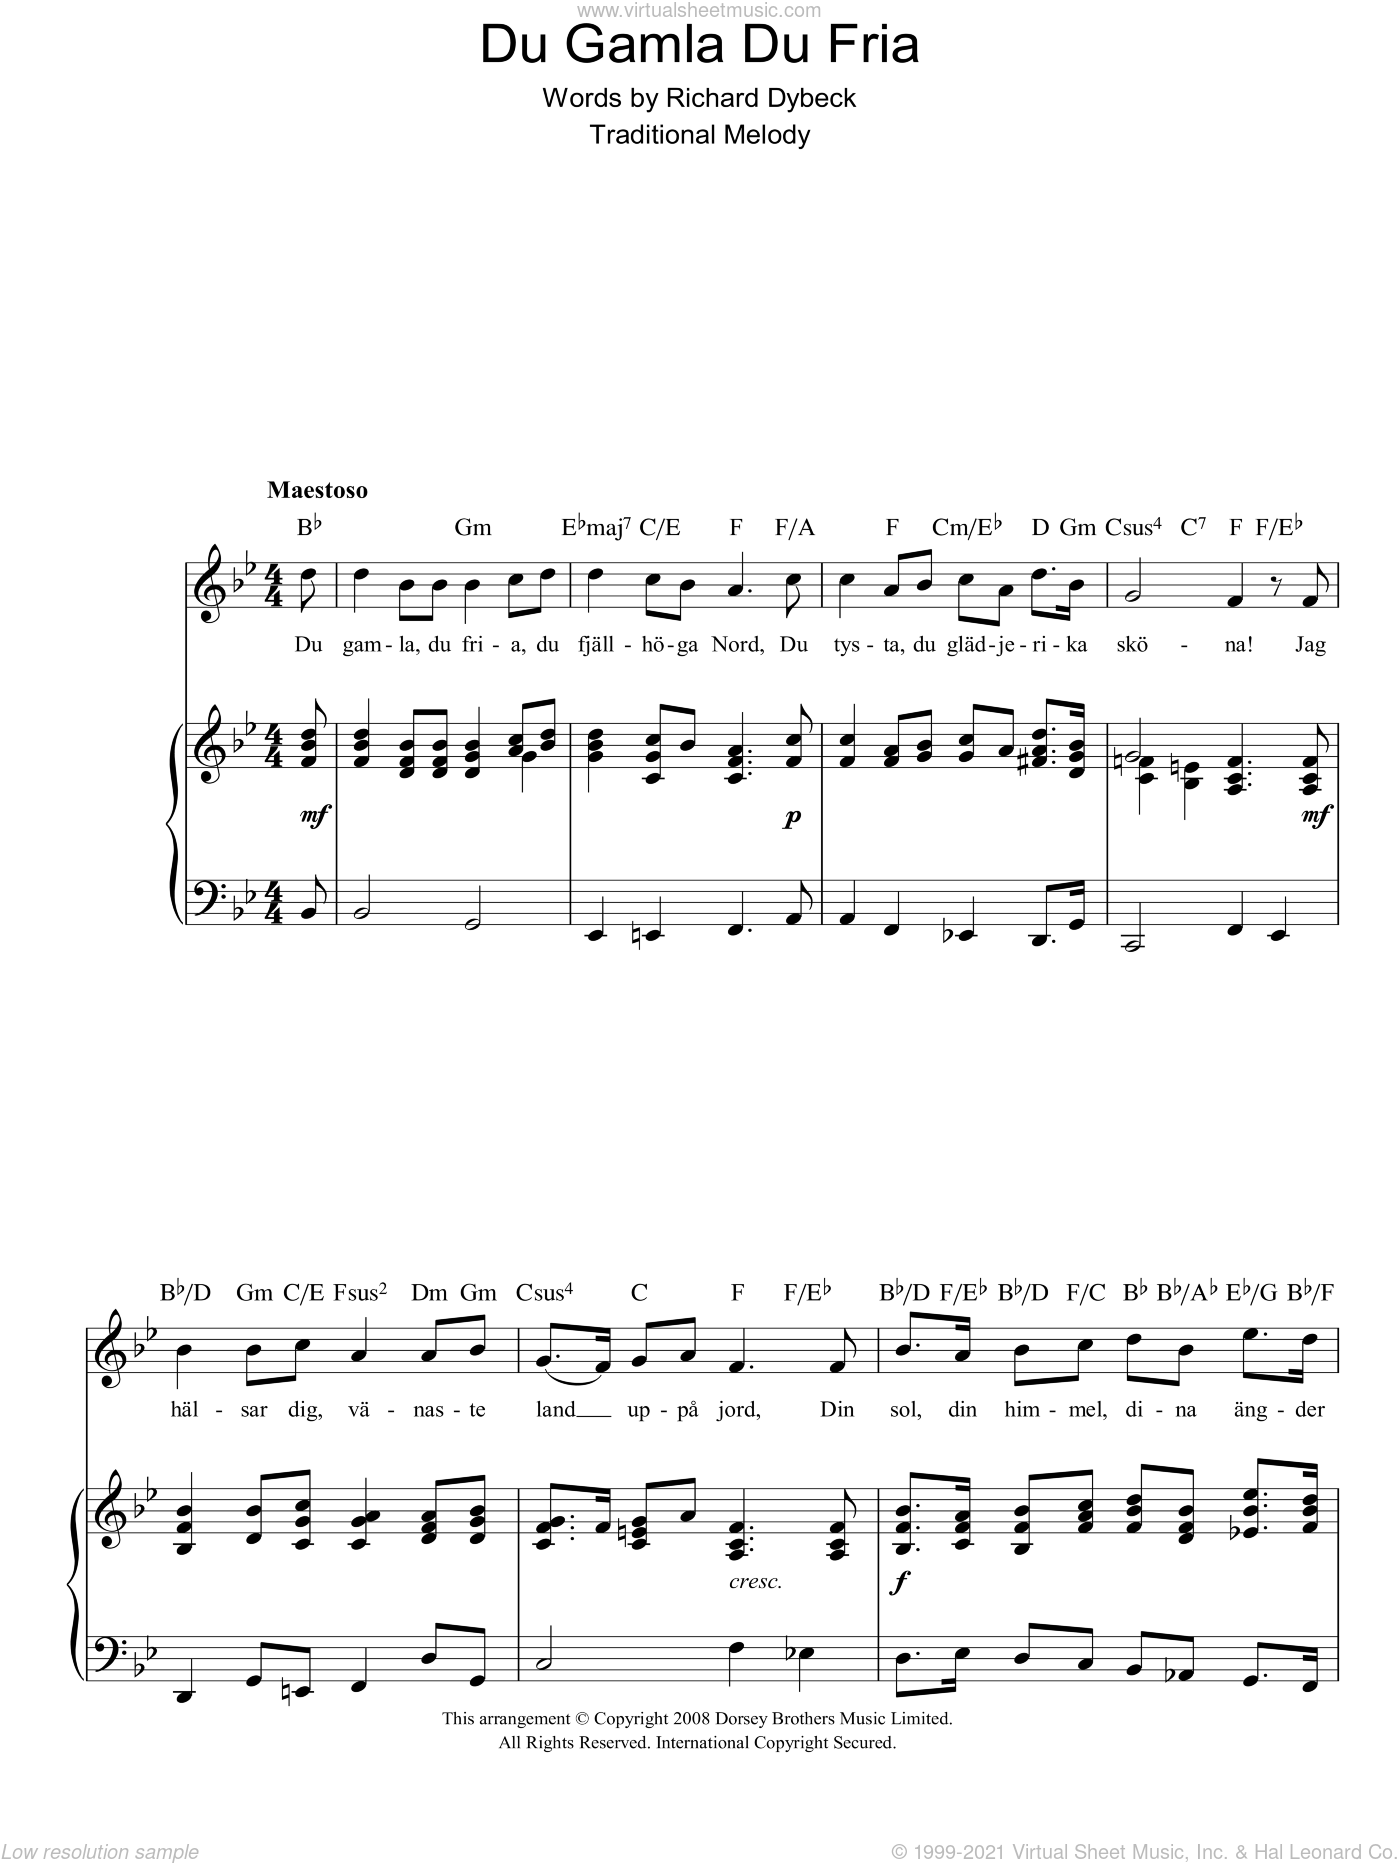 Du Gamla Du Fria (Swedish National Anthem) sheet music for voice, piano or guitar